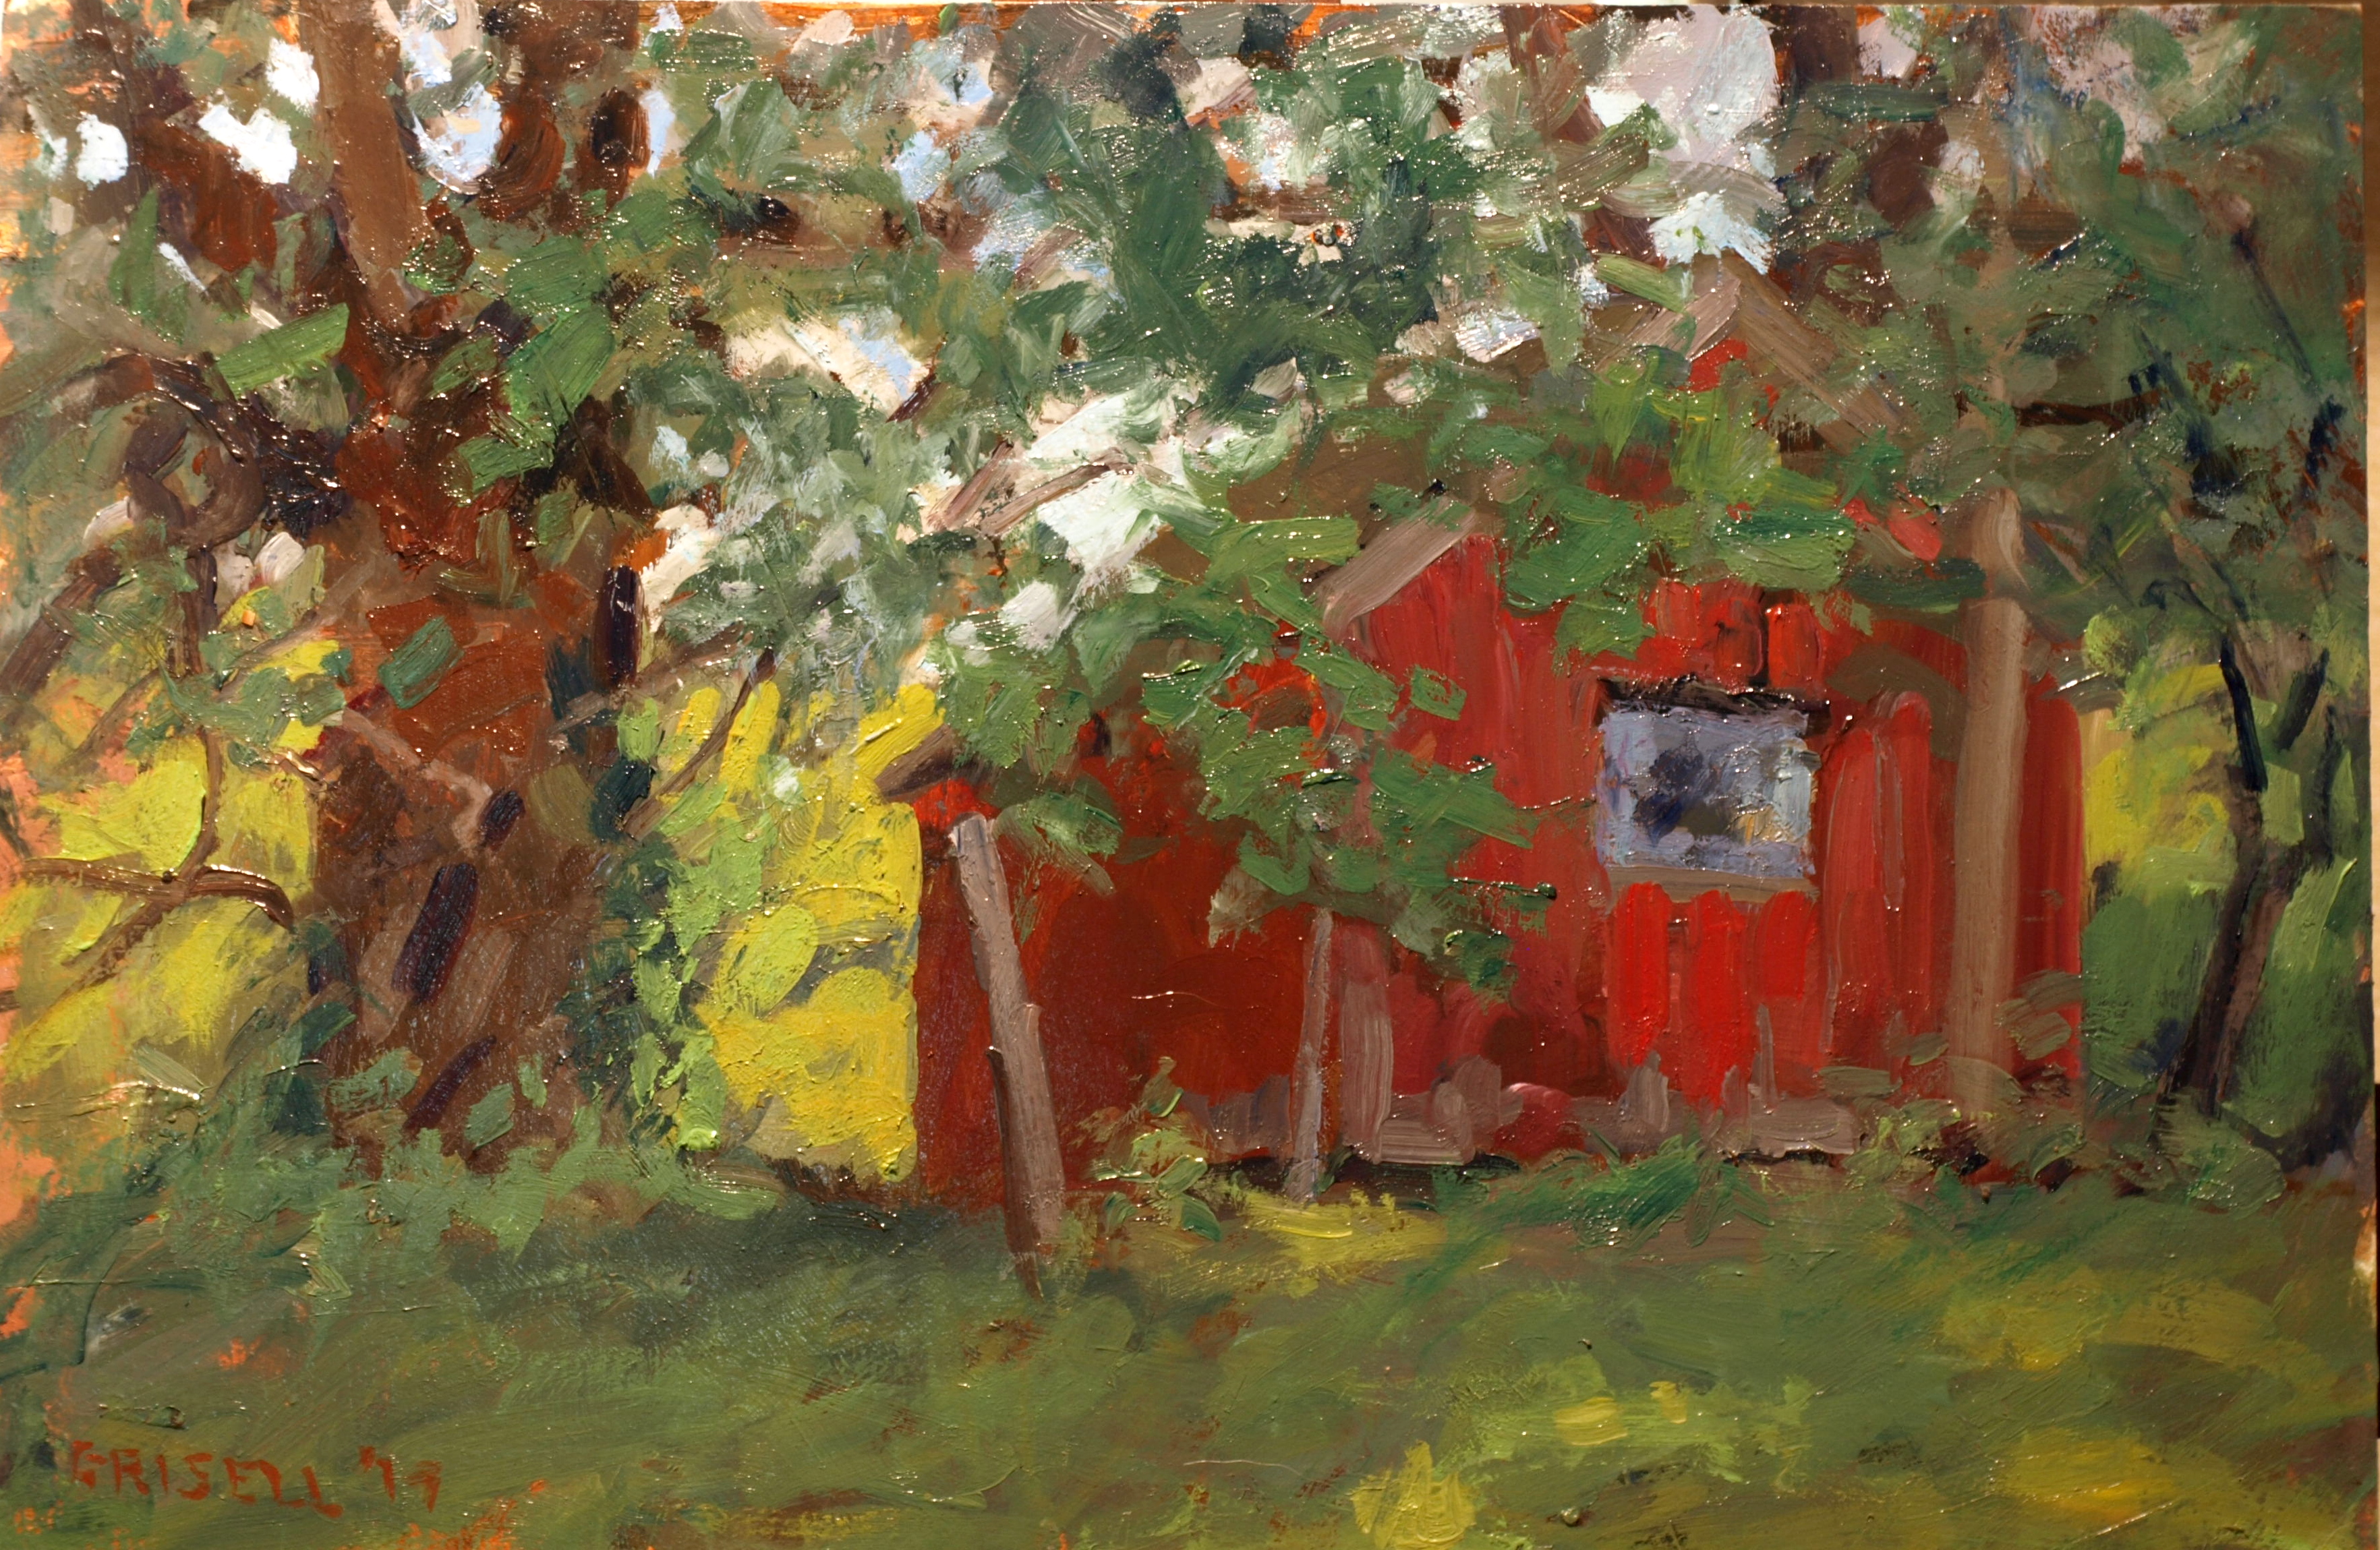 Maple Brook Farm, Oil on Panel, 12 x 18 Inches, by Susan Grisell, $300